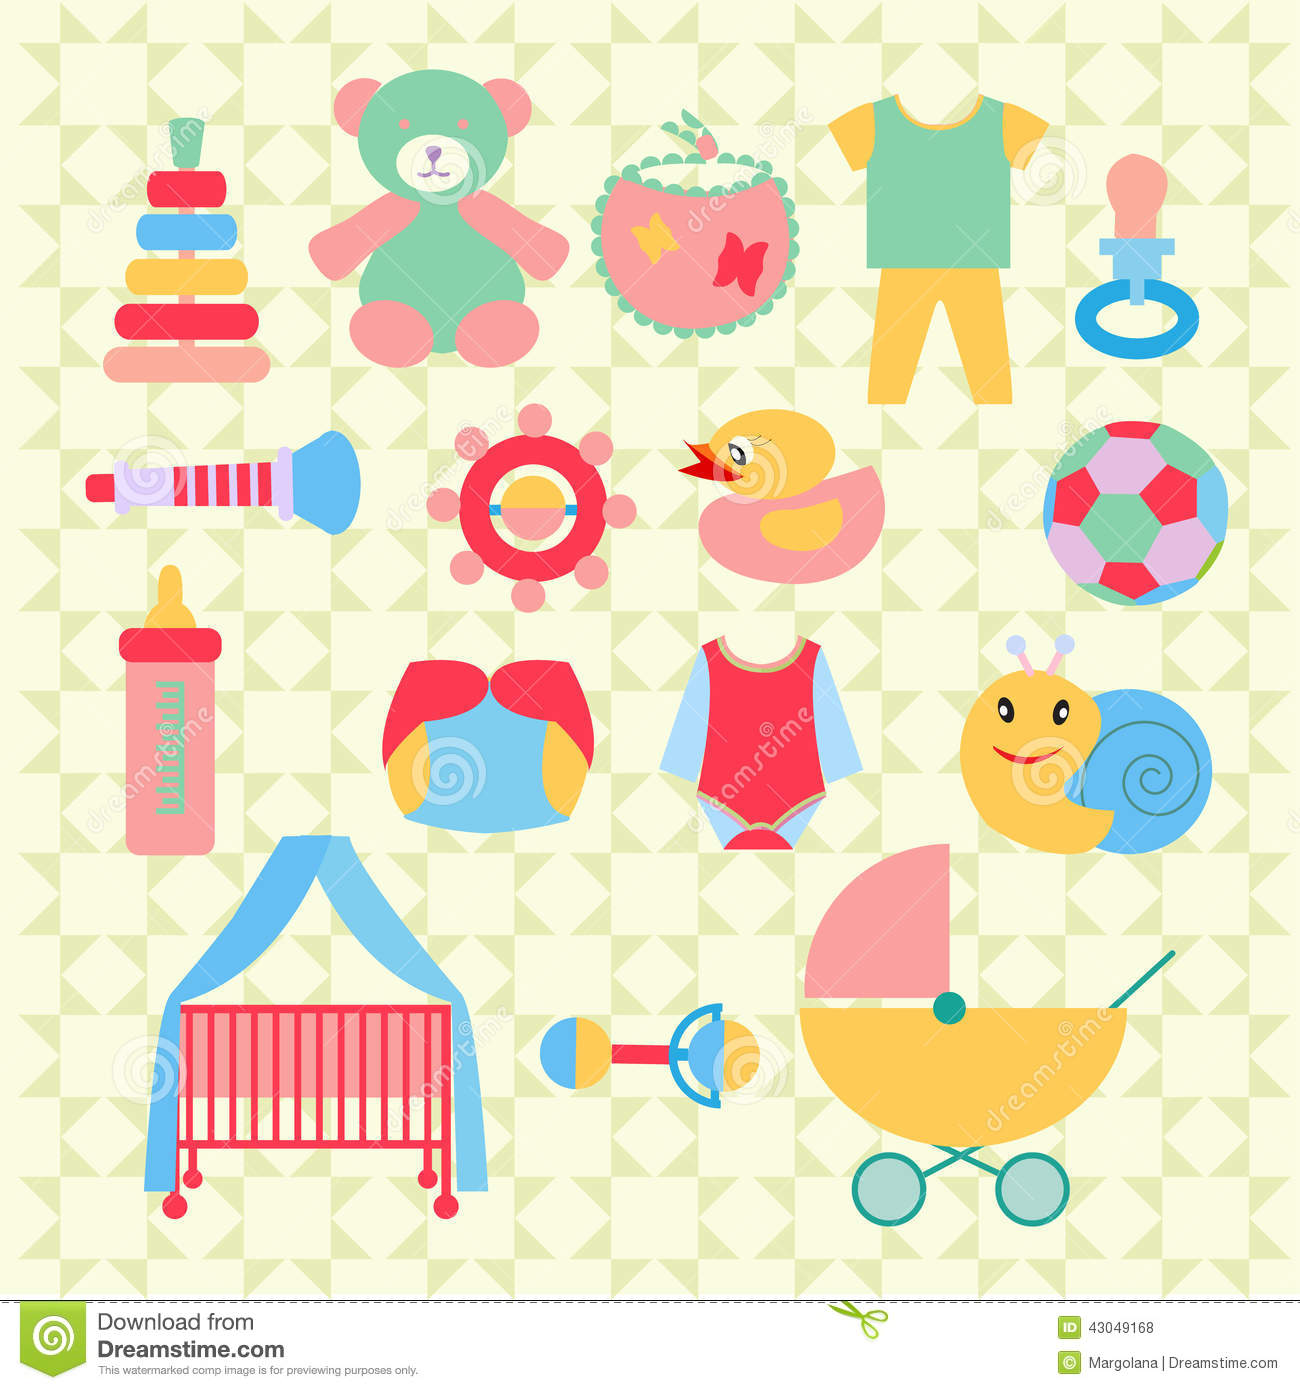 Newborn Baby Stuff Icons Set Illustration Stock